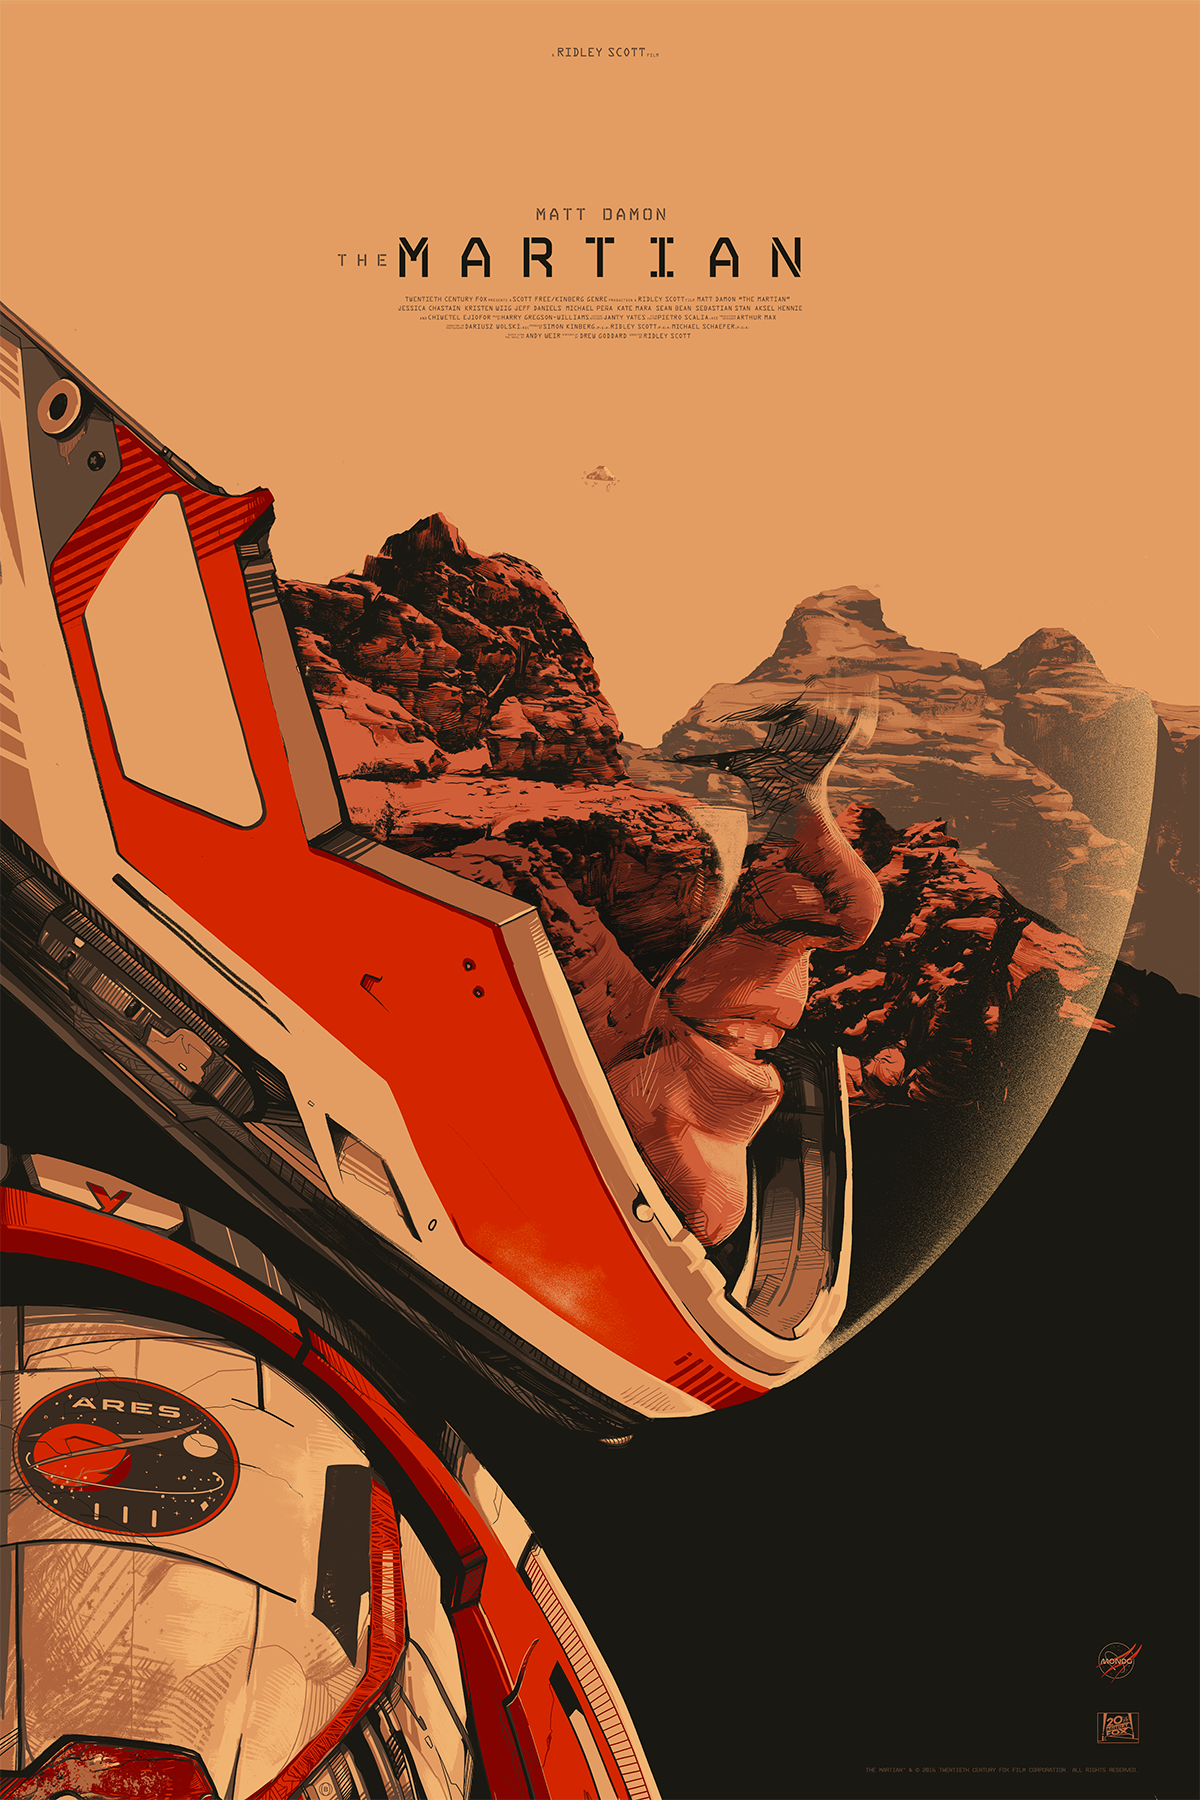 The Martian - Mondo / 20th Century FoxLimited edition, screen-printed film poster.